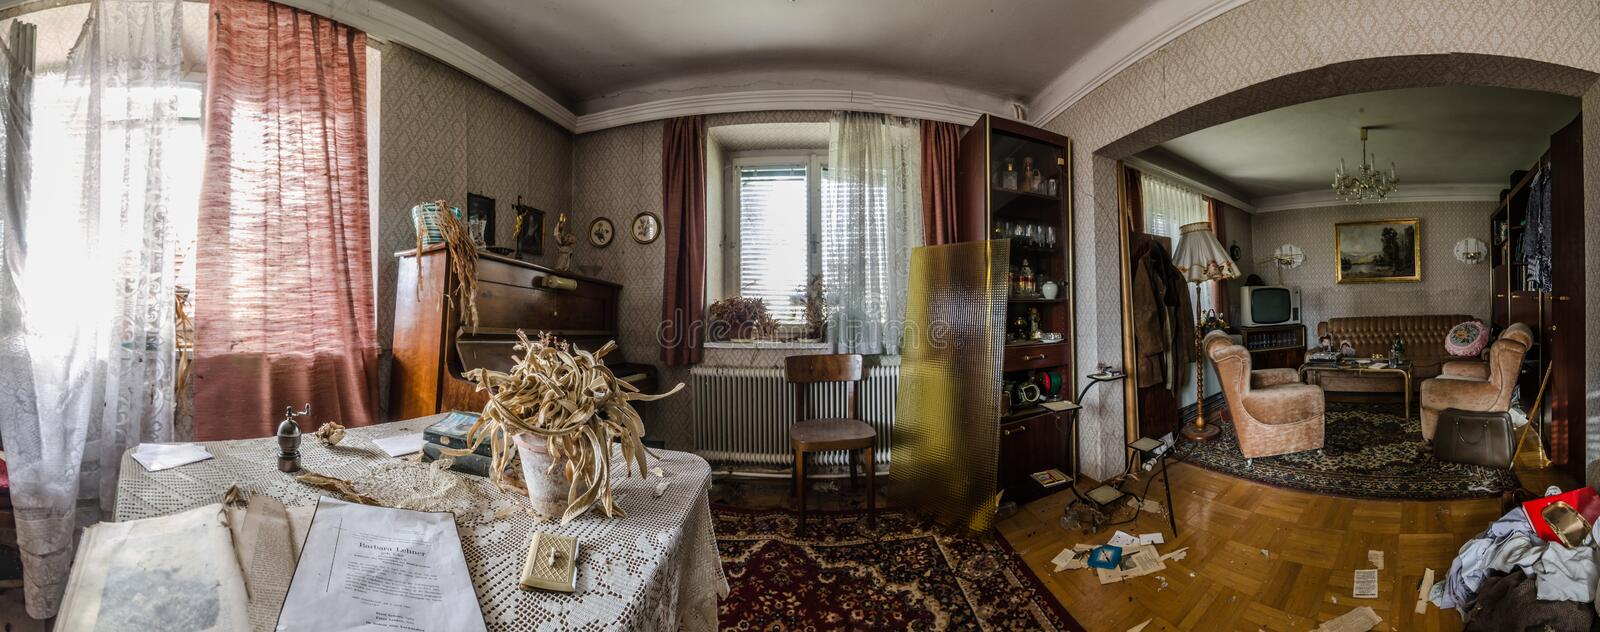 Abandoned old house interior panorama. View stock image